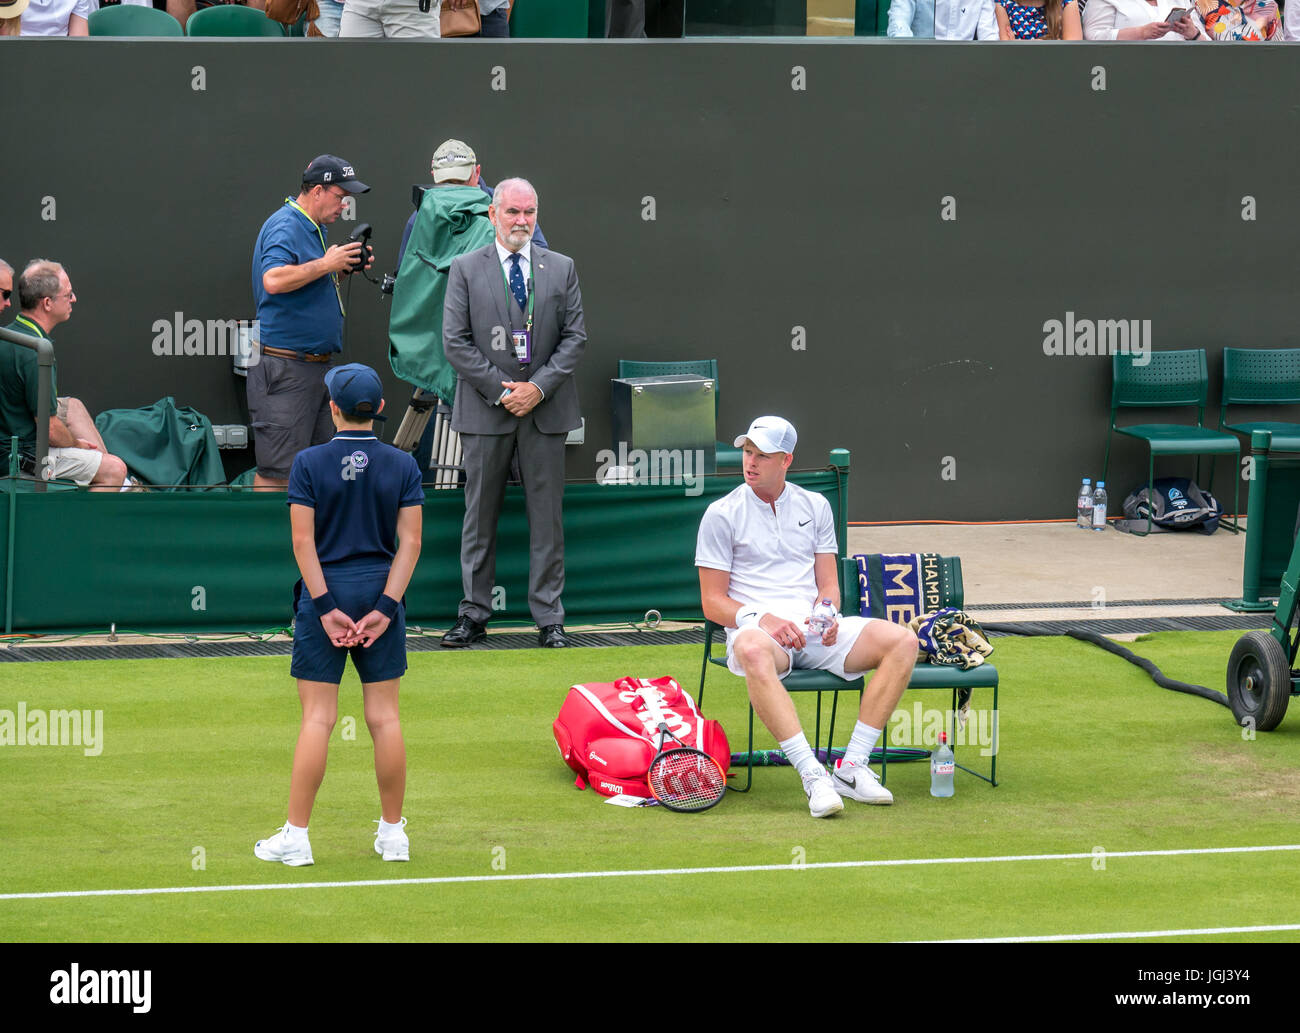 Kyle Edmund takes a break between games on No 3 Court Wimbledon tennis championship 2017, London SW19, England, - Stock Image